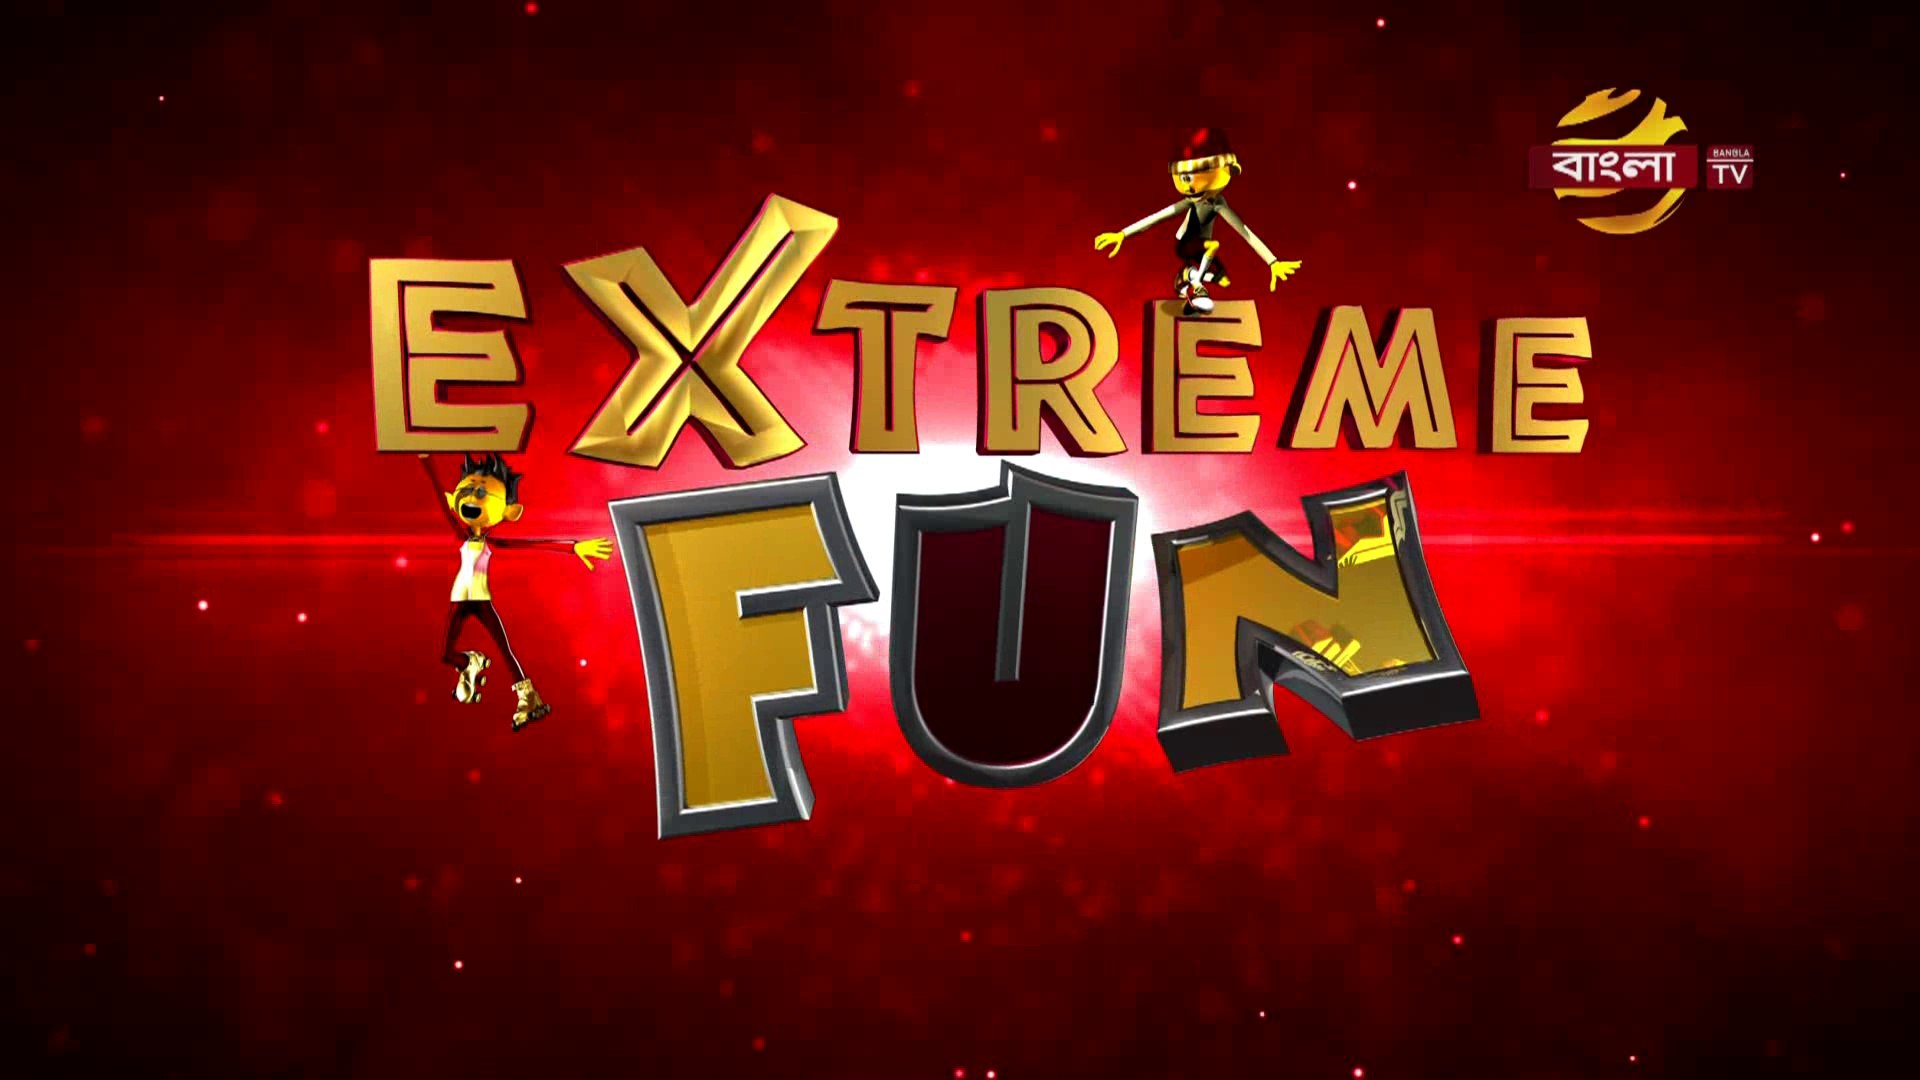 Comedy Show Extreme Fun Episode 02 l Funny People l Funny Drama l Fun Show l Fun Clip l Fun Adda l E